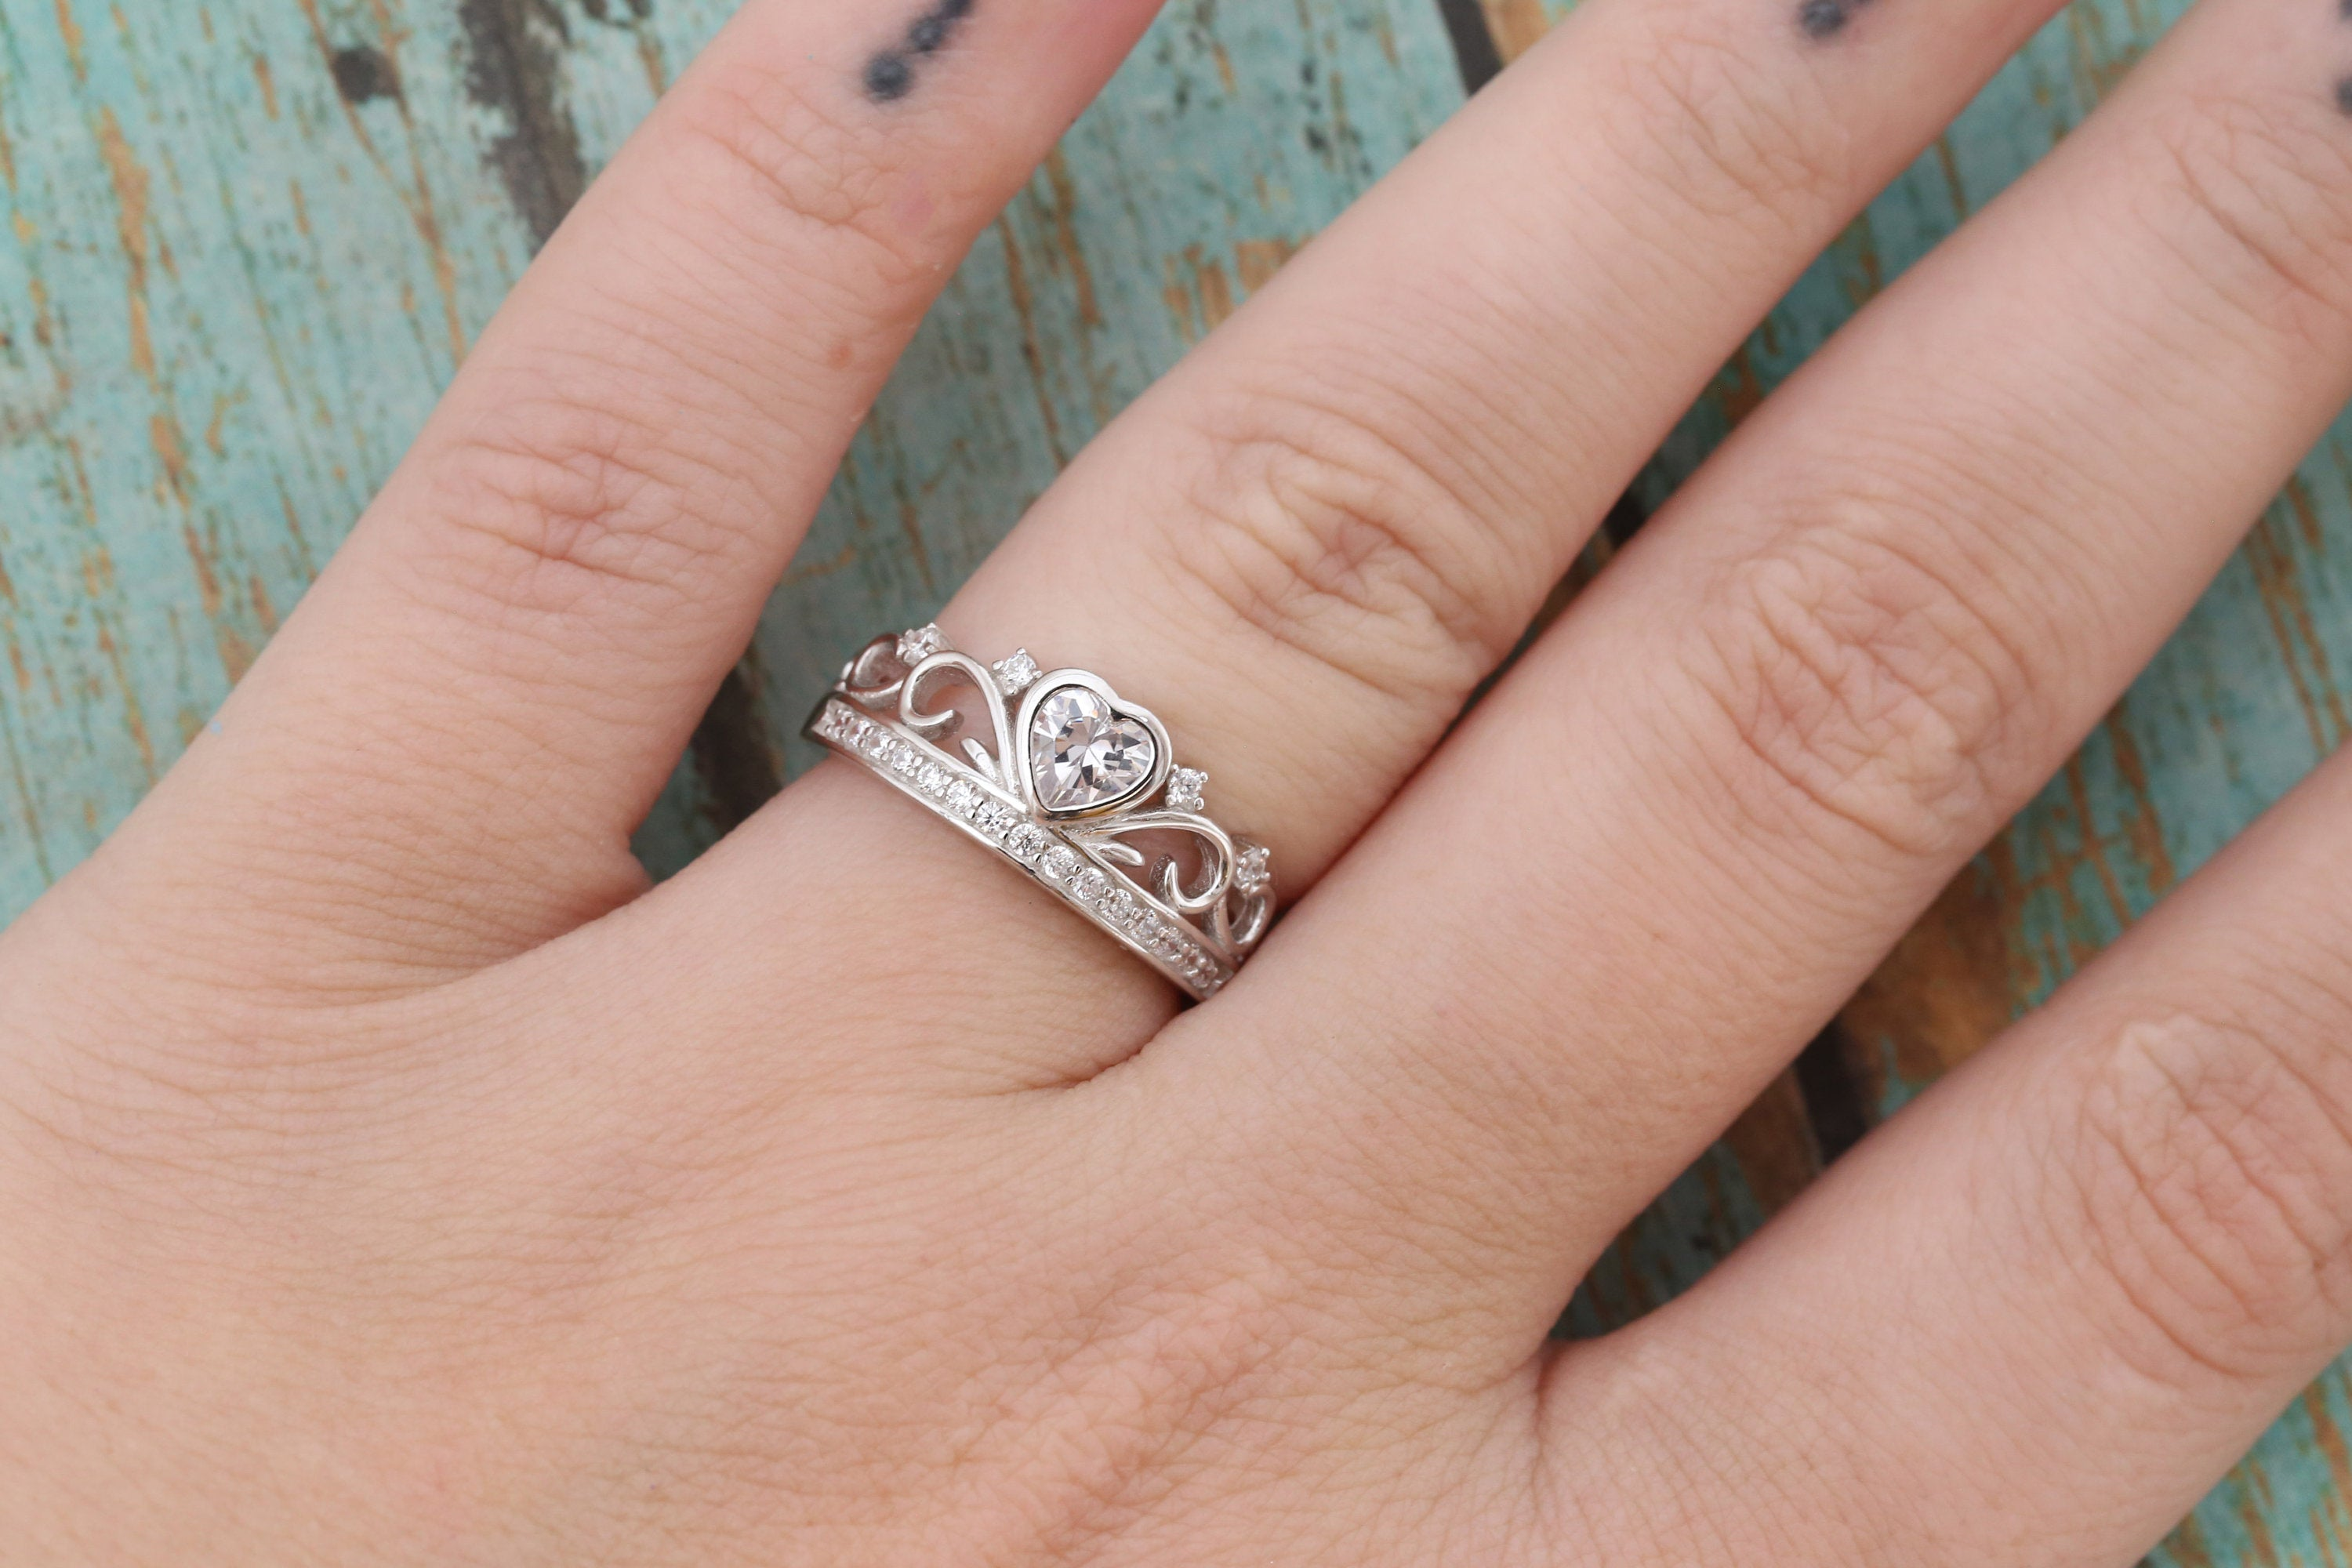 Princess Crown Cremation Ring - Sterling Silver Crown Ring - Cremation Jewelry - Ash Ring - Ash Jewelry - Urn Ring - Pet Loss - LifeStone